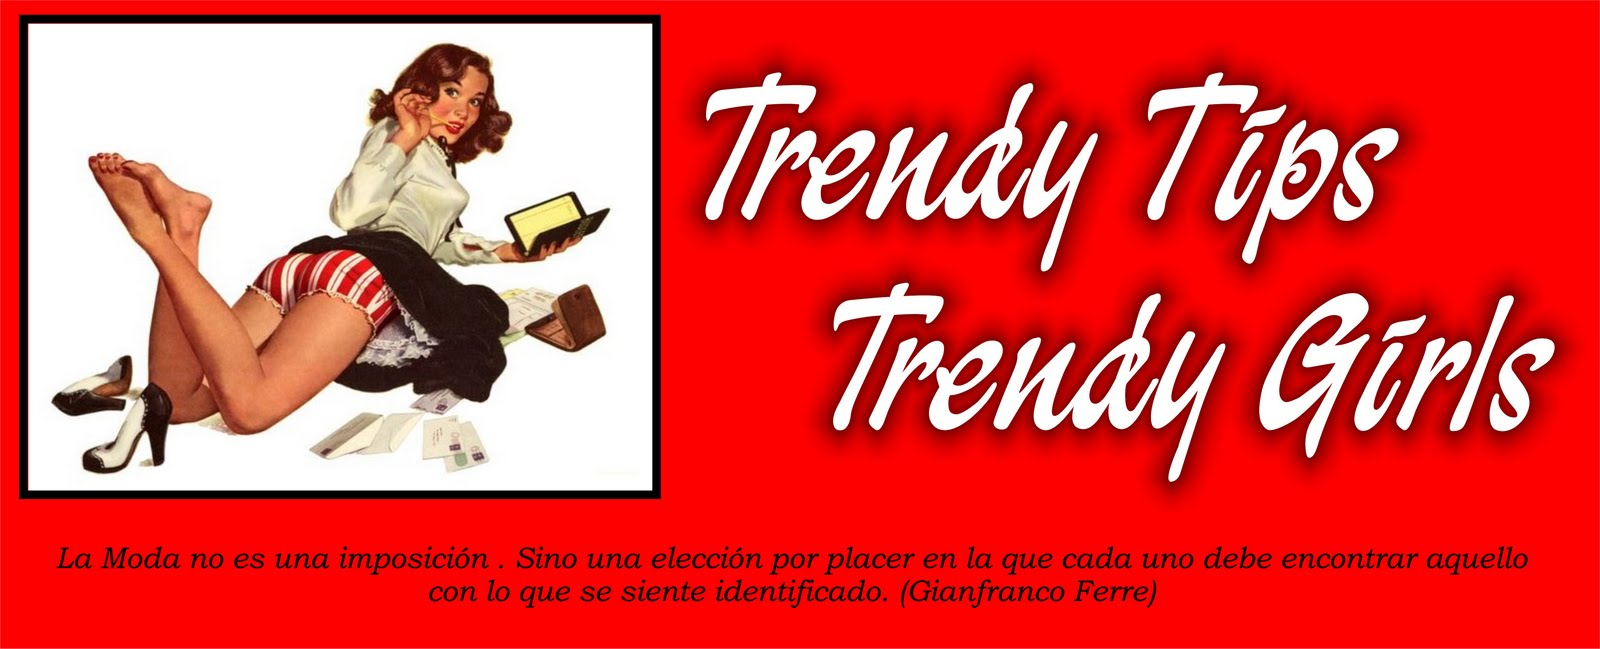 Trendy Tips Trendy Girls